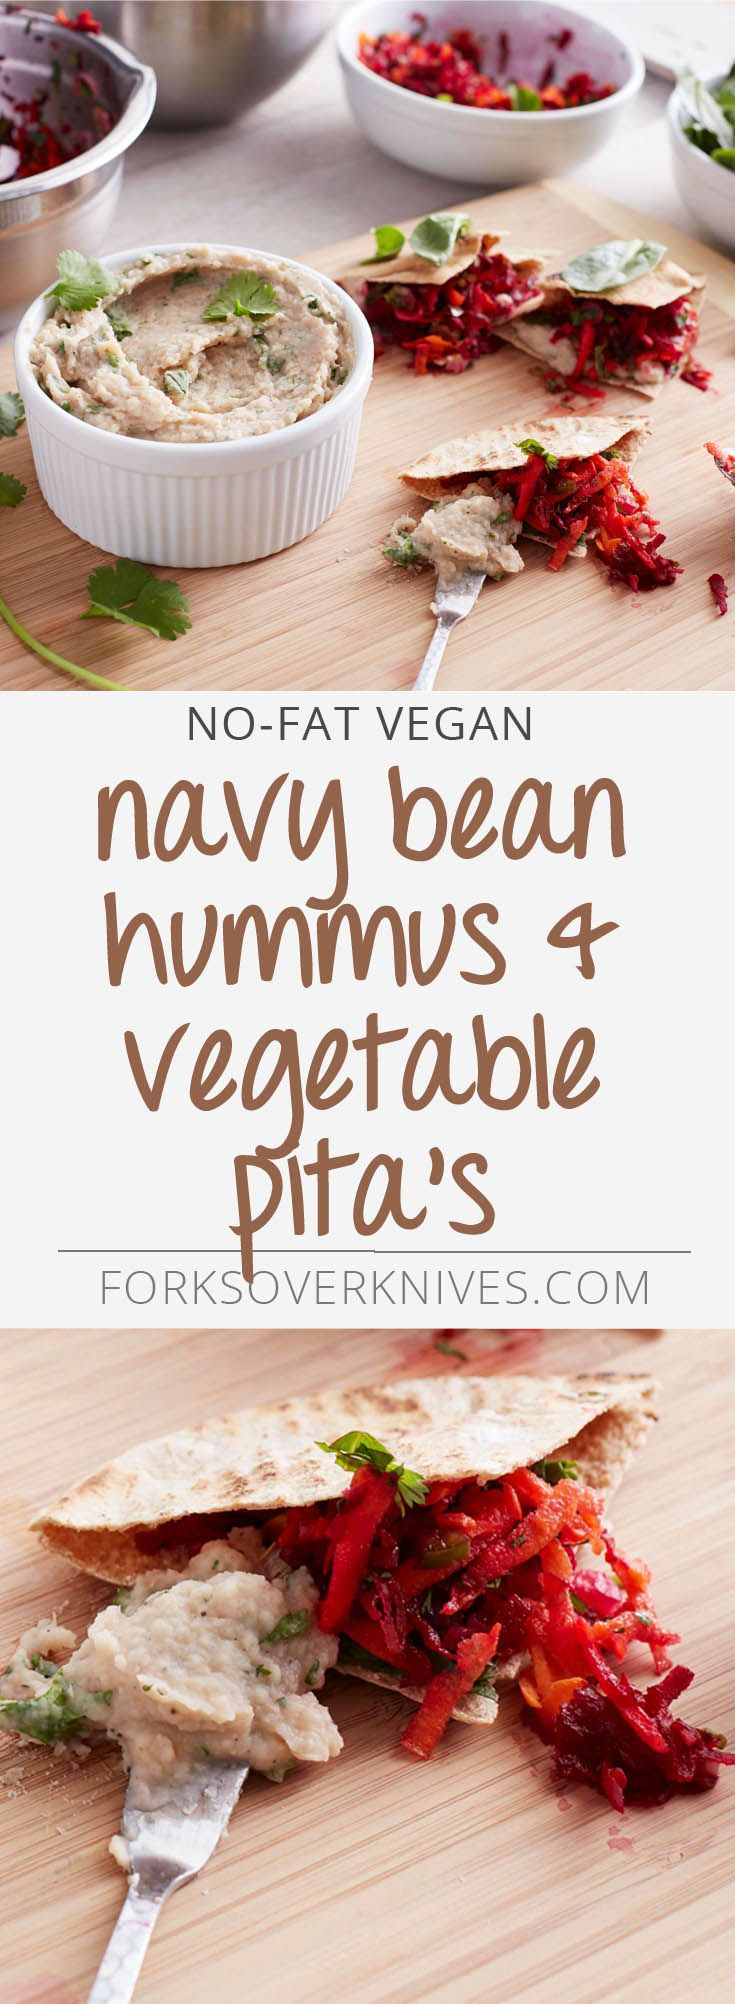 Creamy, garlicky navy bean hummus and crunchy fresh vegetables are tucked into hearty whole-wheat pitas in a perfect marriage of textures, colors, and flavors. From The Forks Over Knives Plan Instructions 1. To prepare the hummus, place the soaked navy...  Read more